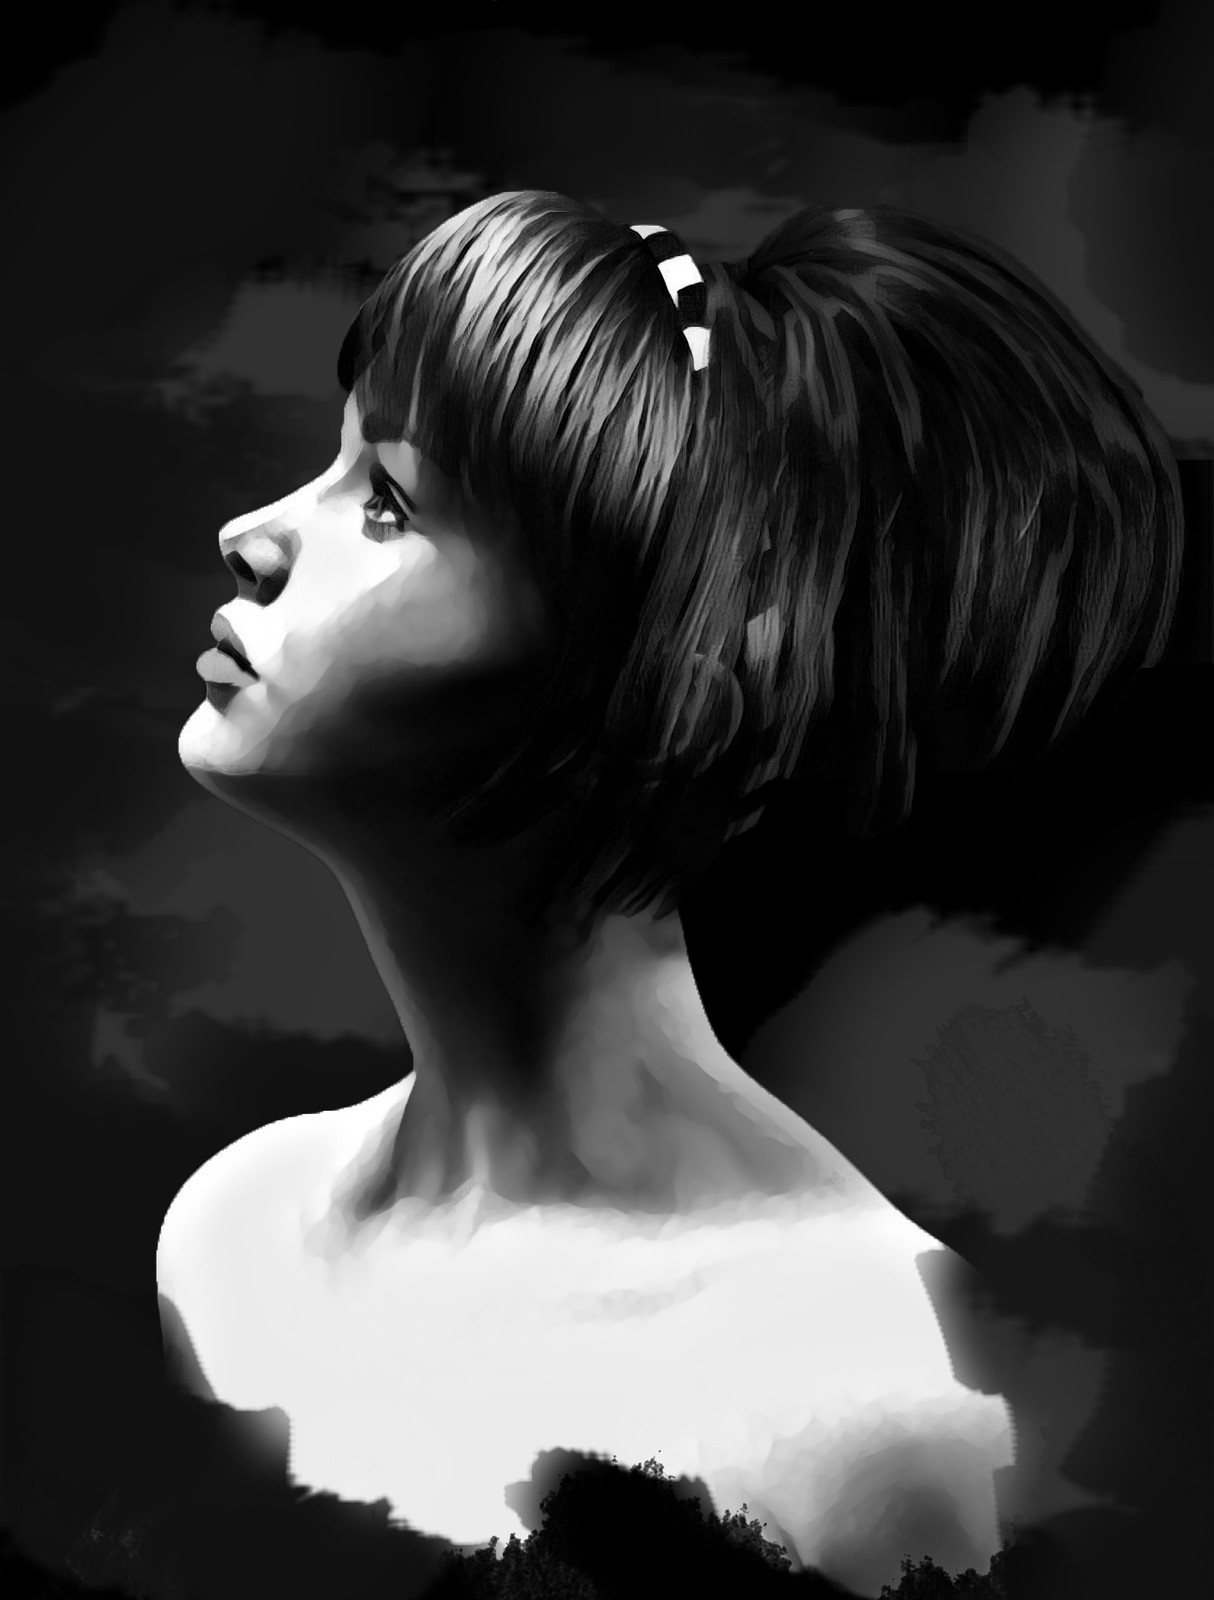 Black and White Portrait Study